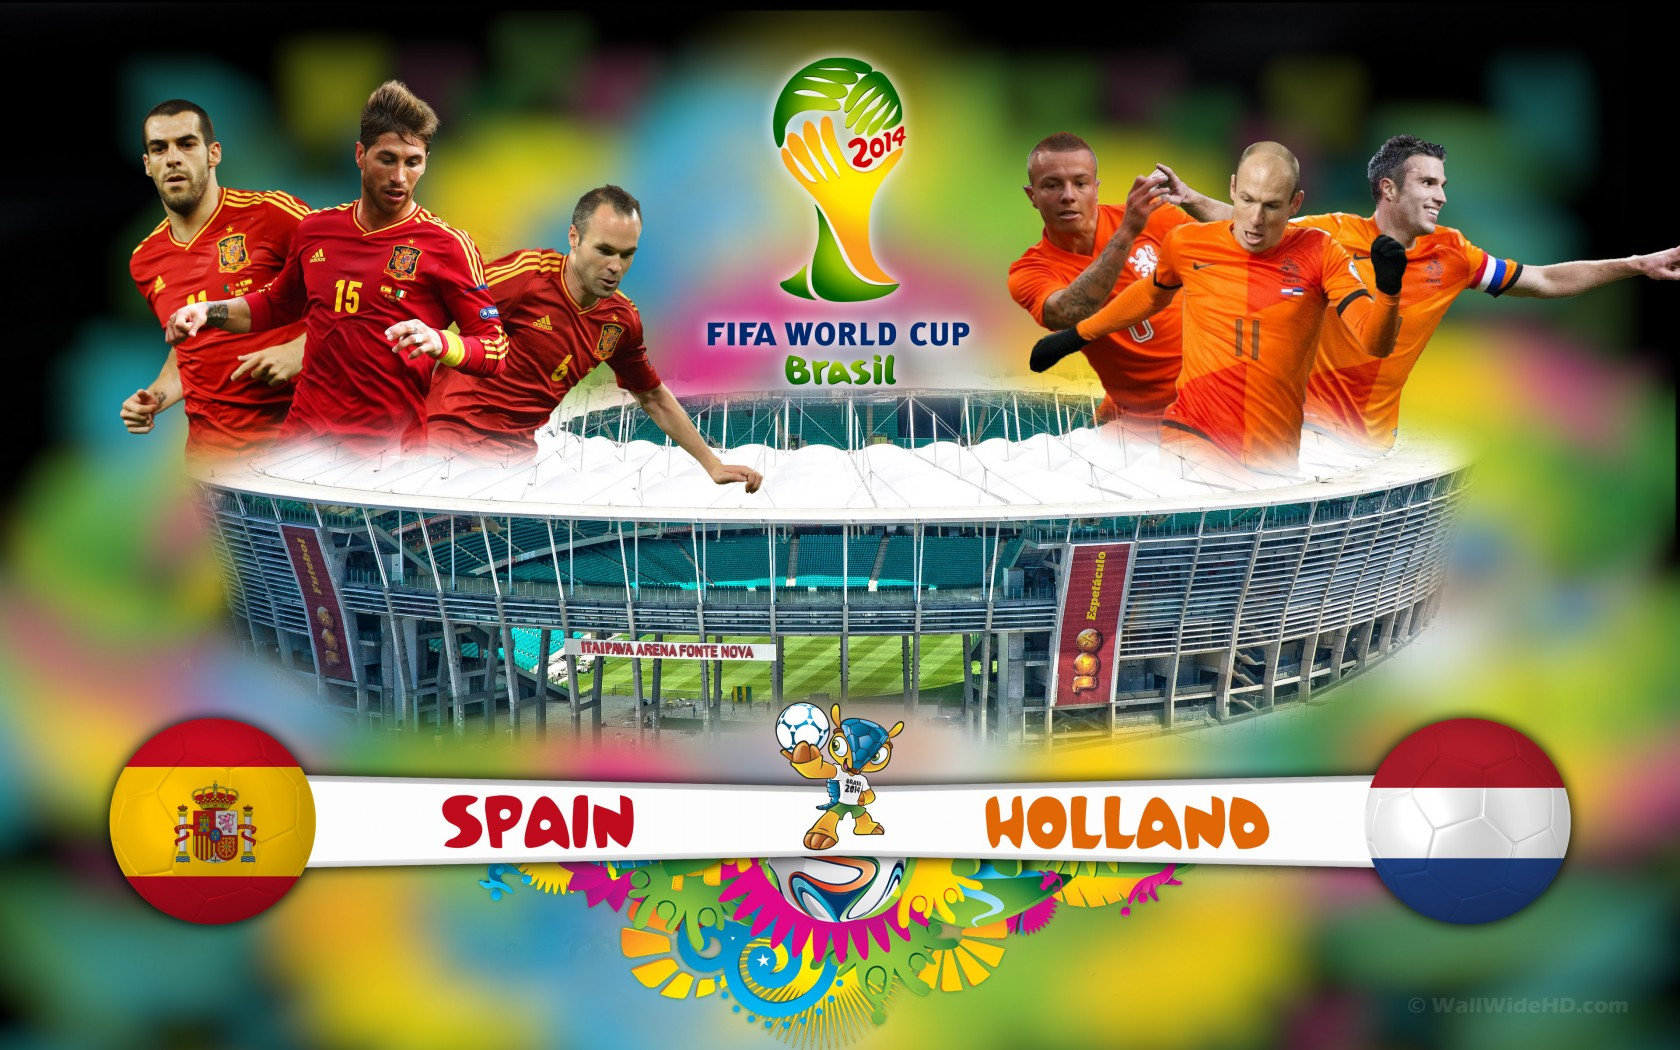 Spain-vs-Holland-2014-World-Cup-Group-B-Match-Wallpaper-1680x1050.jpg